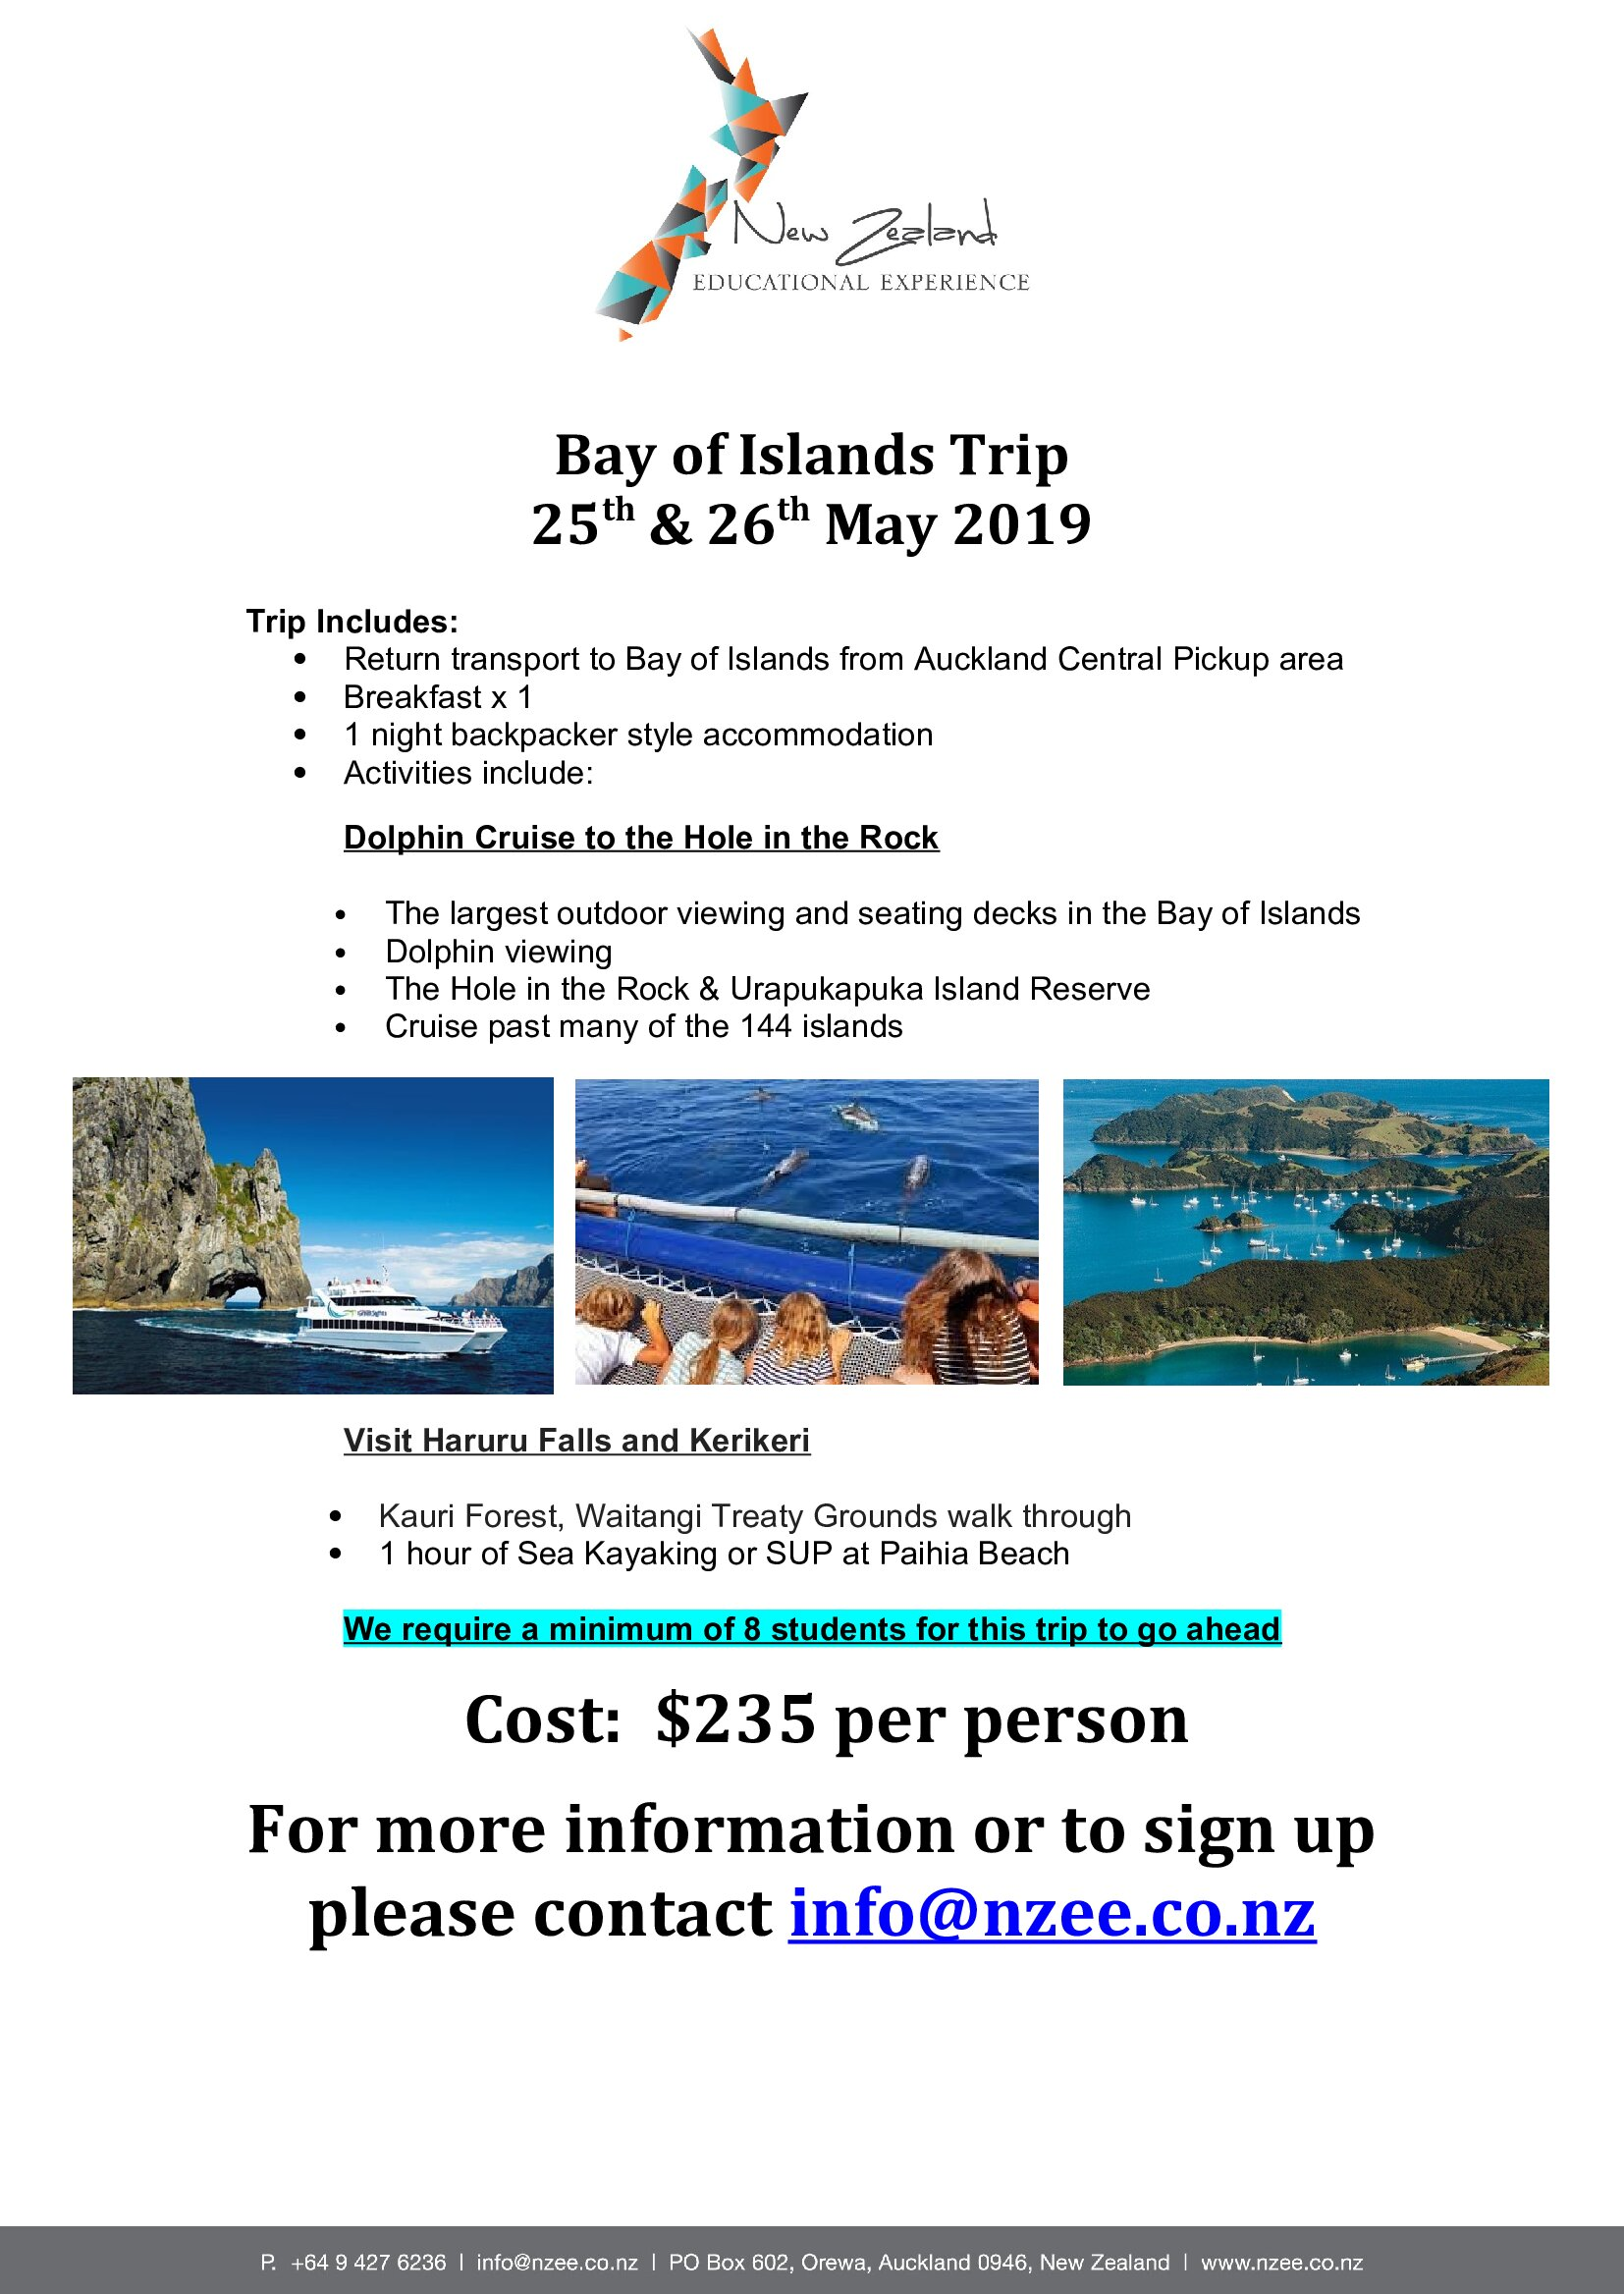 Bay of Islands Trip 25th & 26th May 2019